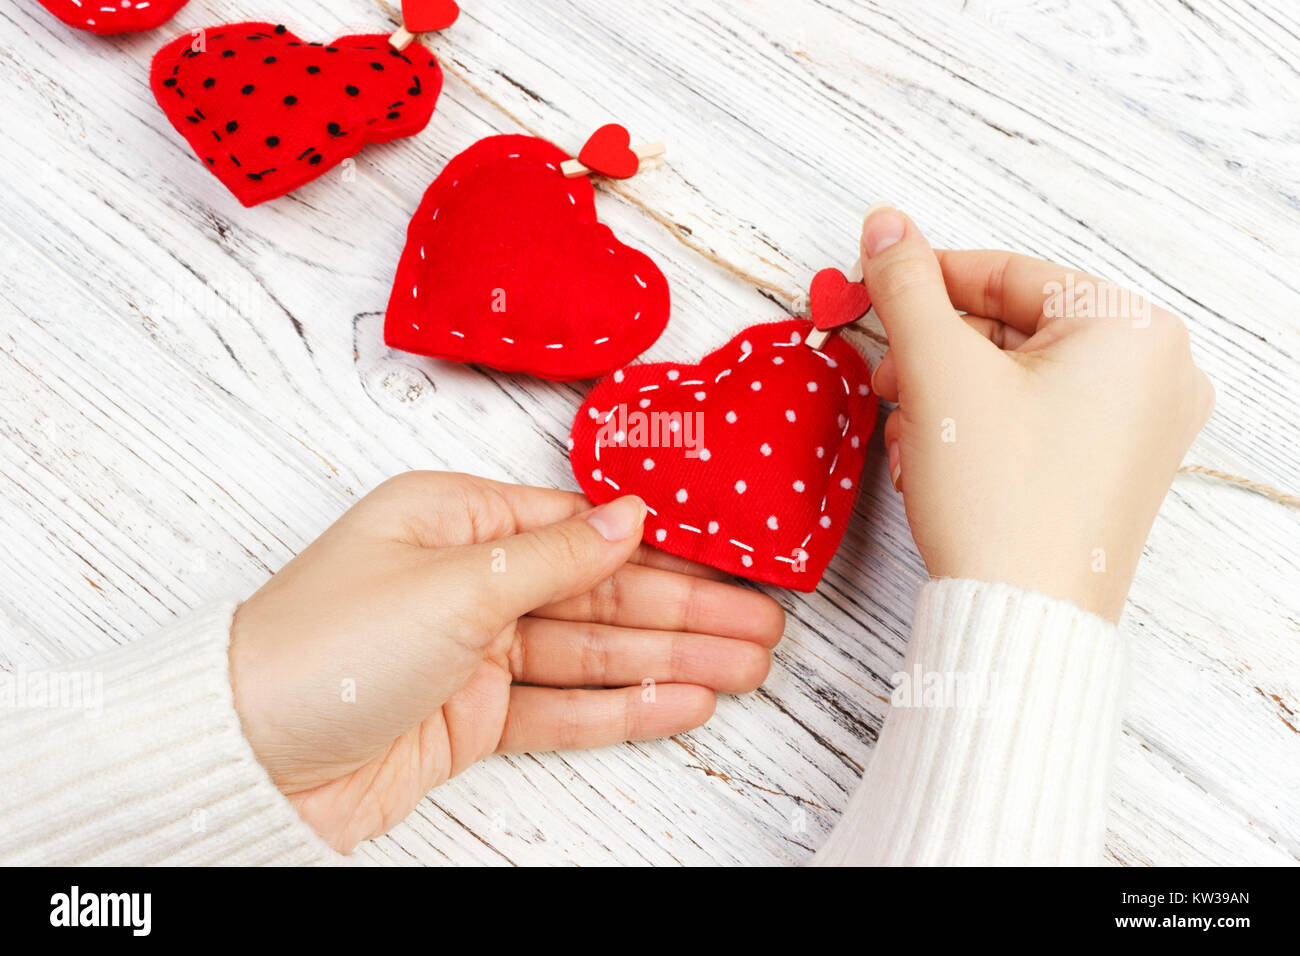 Valentine Background With Sewed Pillow Diy Handmade Hearts In Womans Hands At Rustic Wood Planks Happy Lovers Day Copy Space